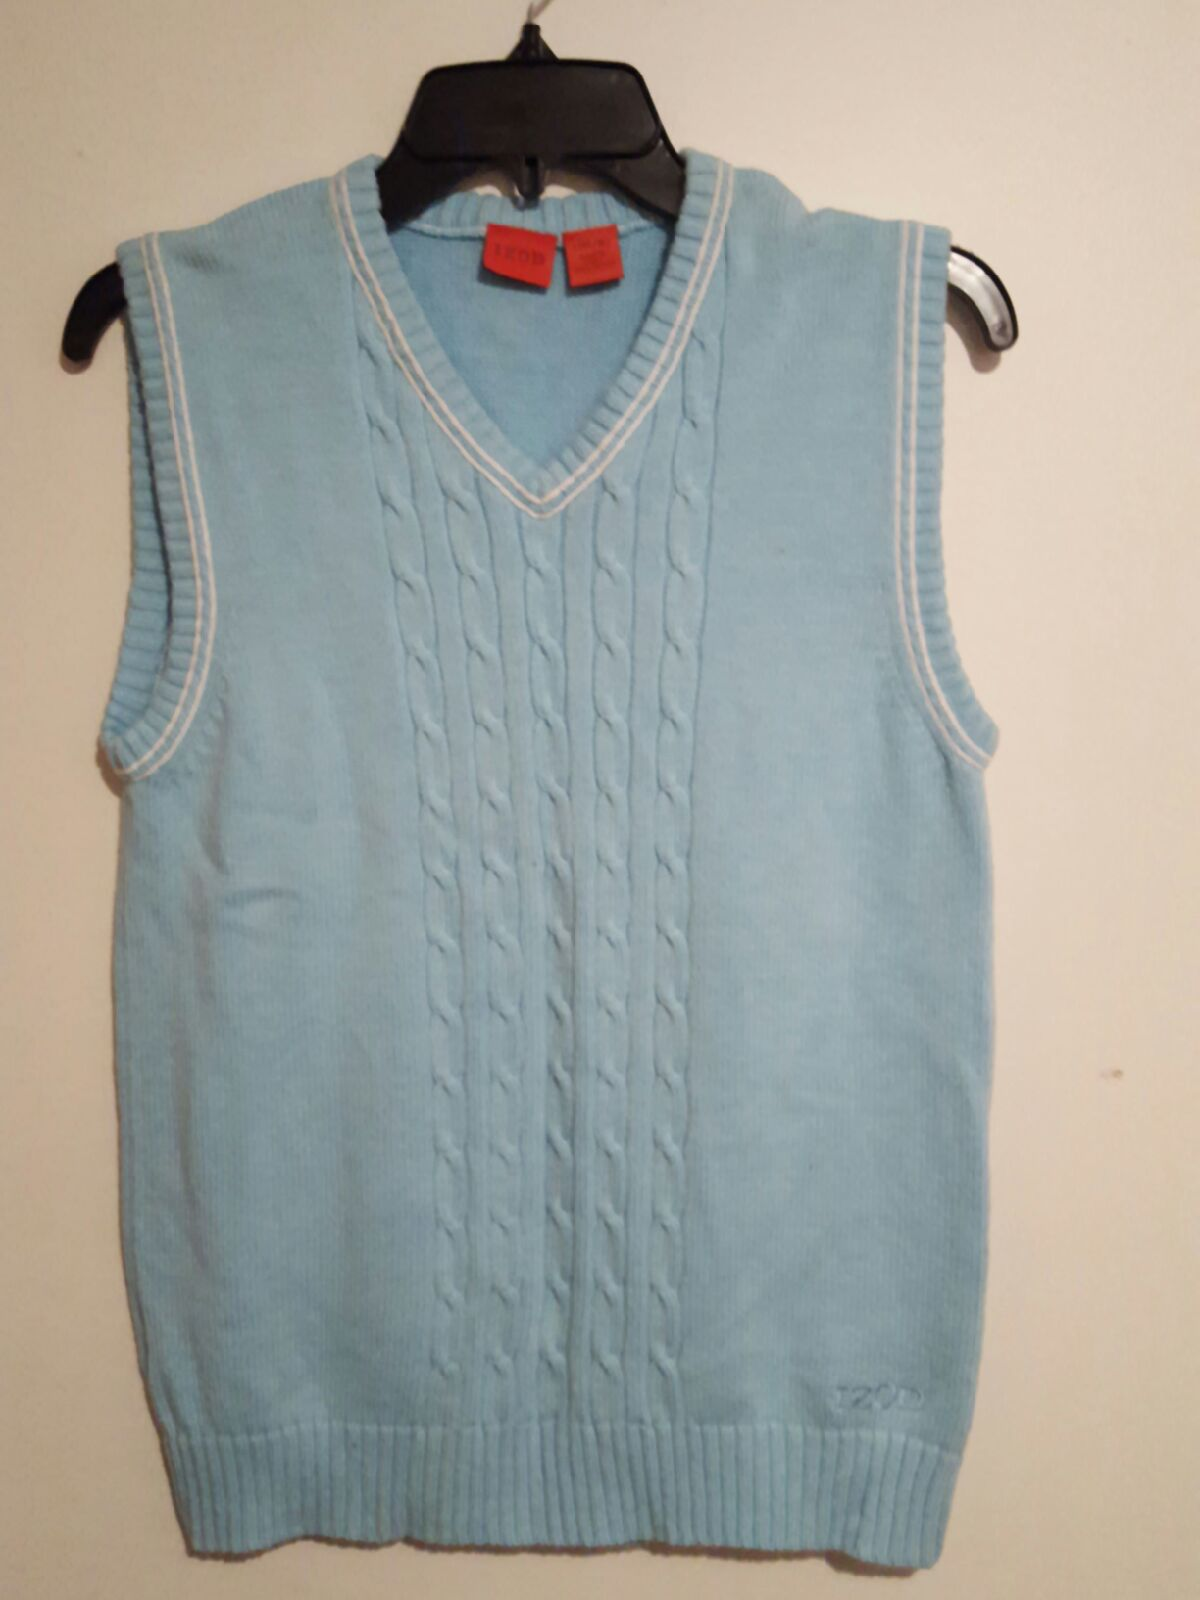 IZOD SWEATER VEST - Mercari: BUY & SELL THINGS YOU LOVE